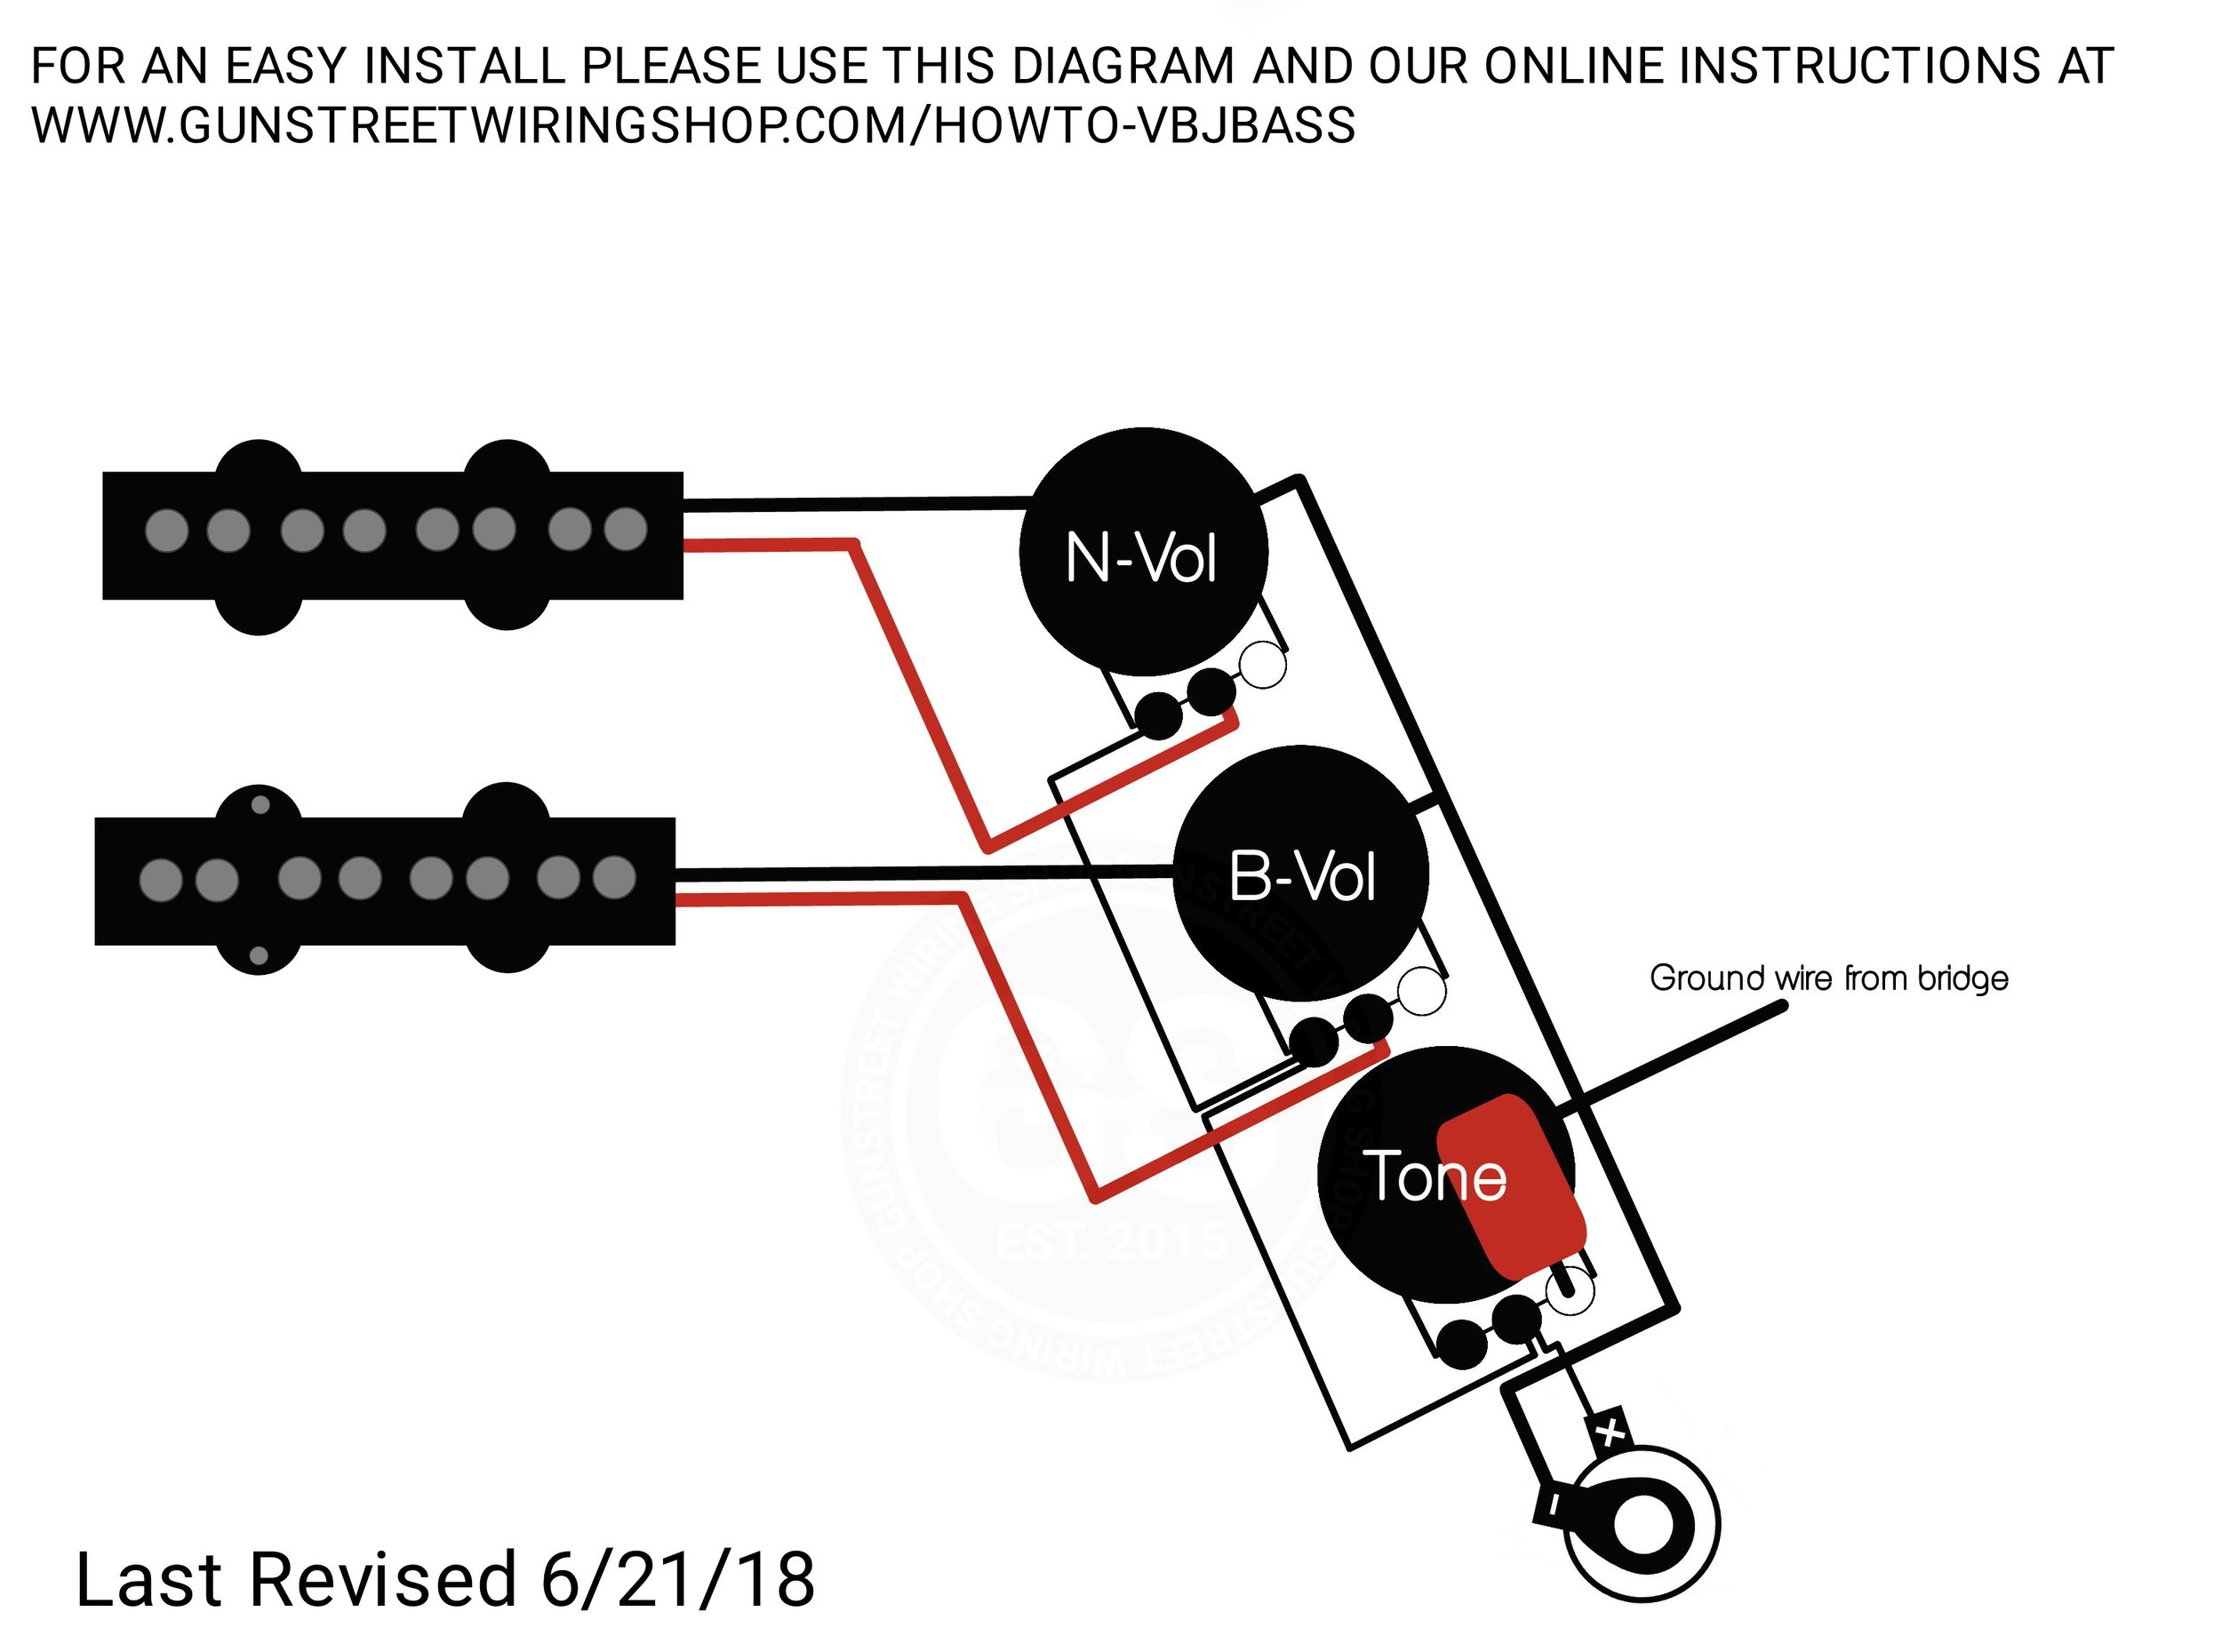 jazz bass volume bleed wiring-picsay.jpg